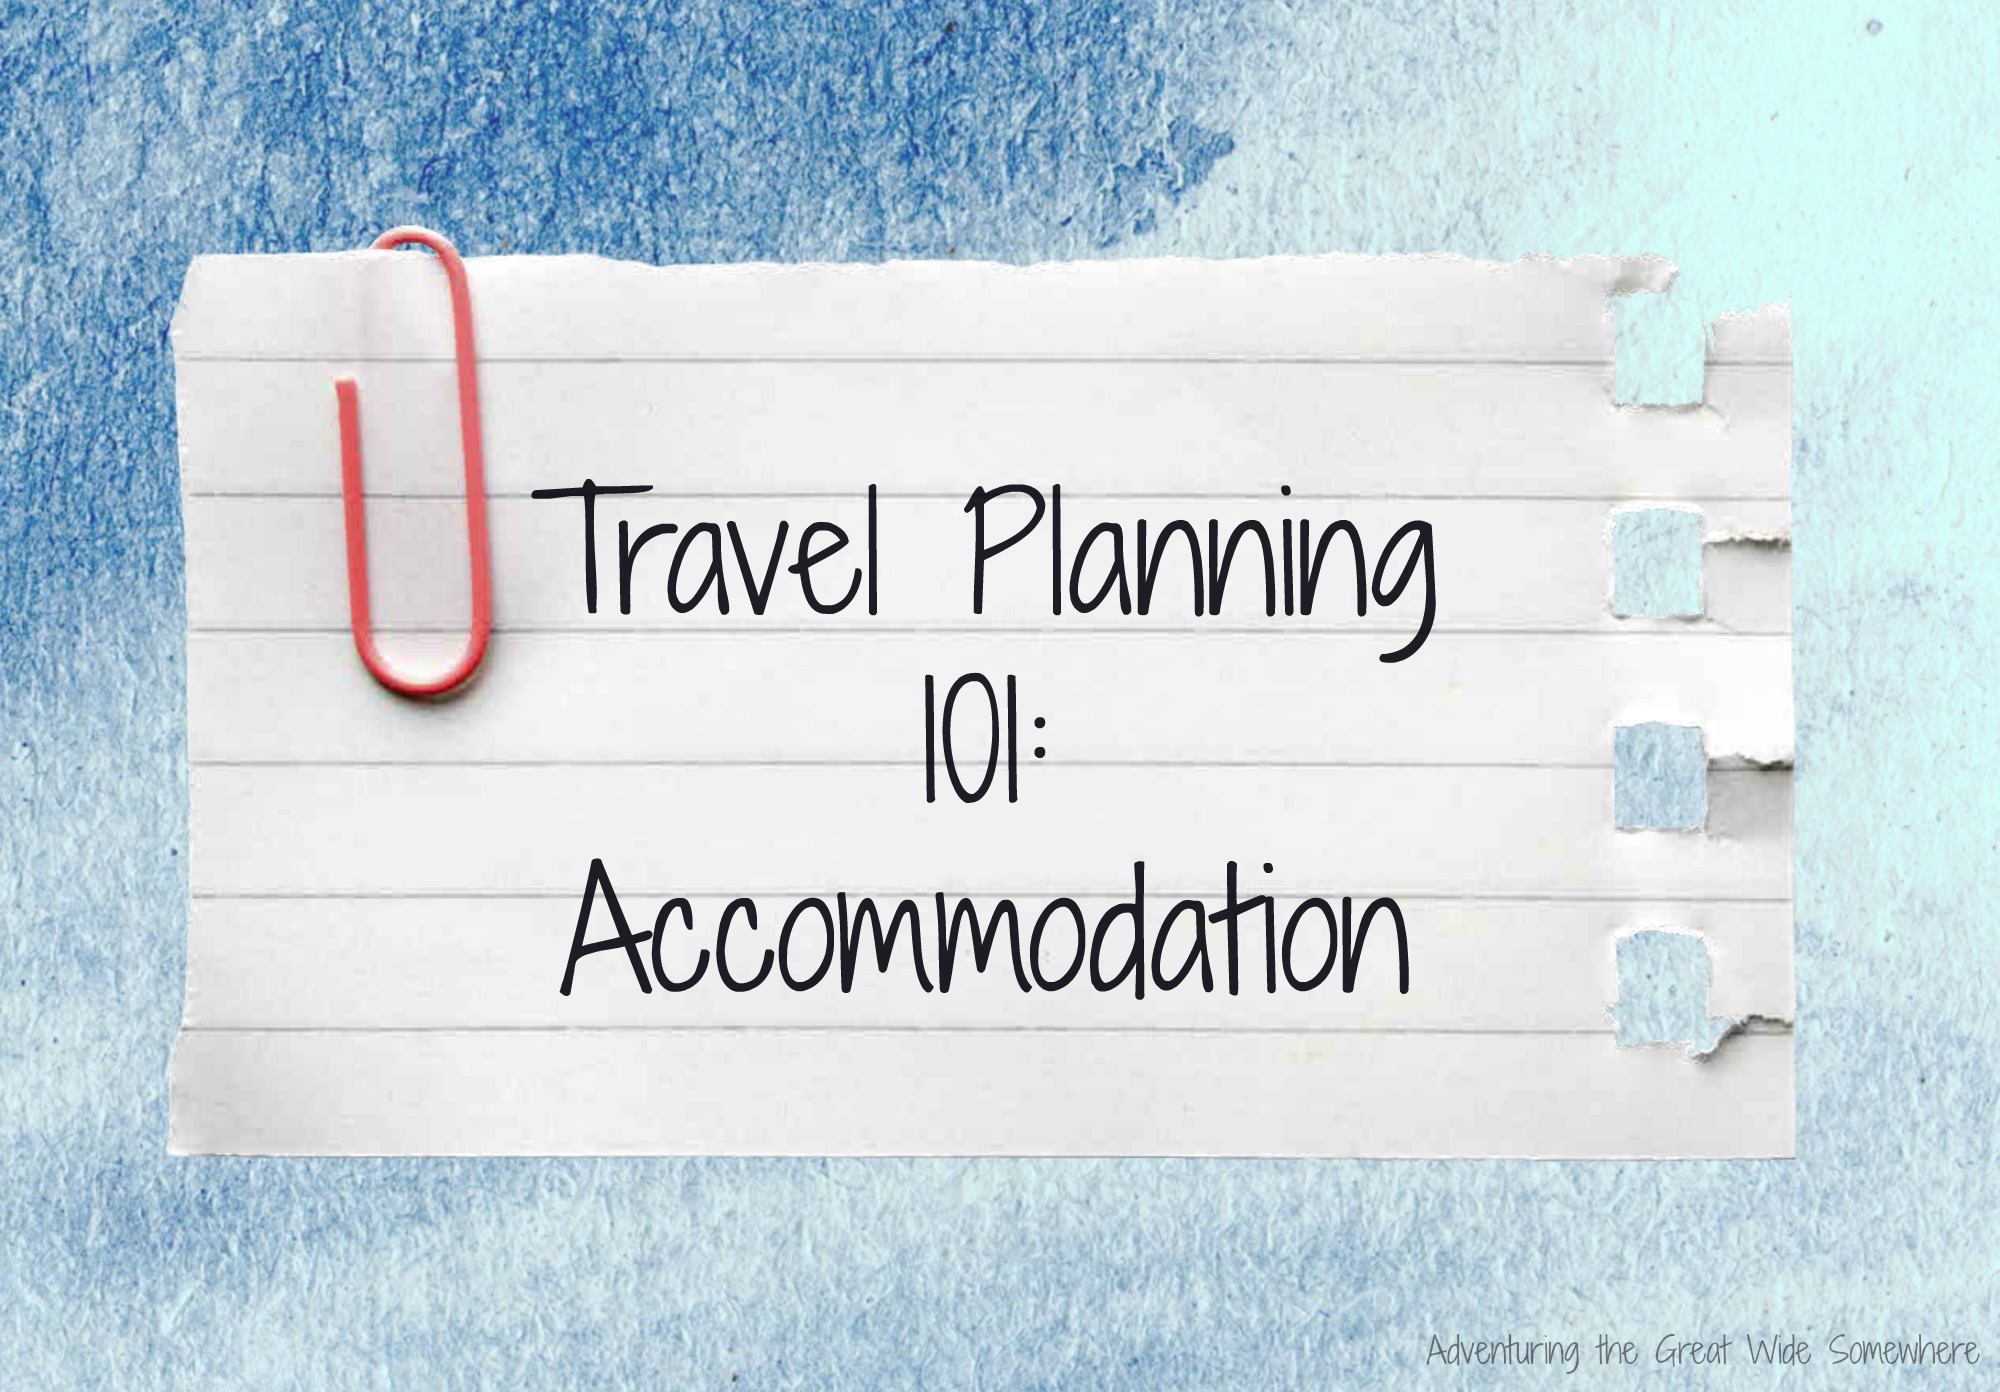 Travel Planning 101: Accommodation